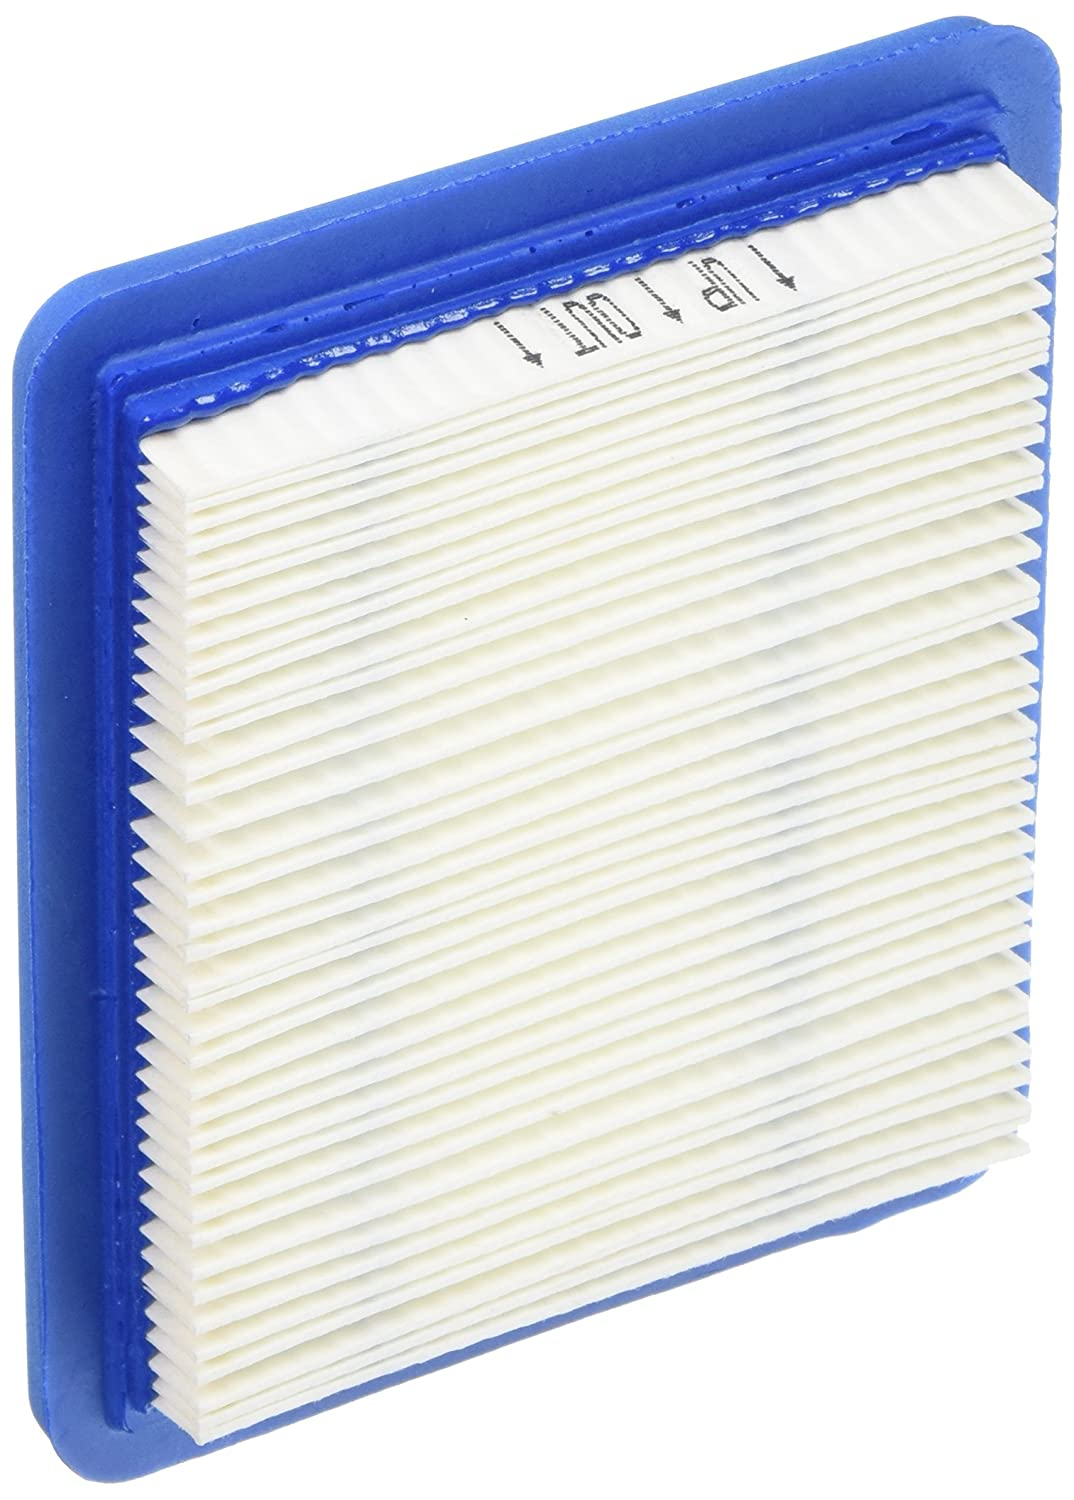 Briggs & Stratton 5043K Air Filter Cartridge 3.5 - 11.0 HP Gross, 625-1575 Series Engines